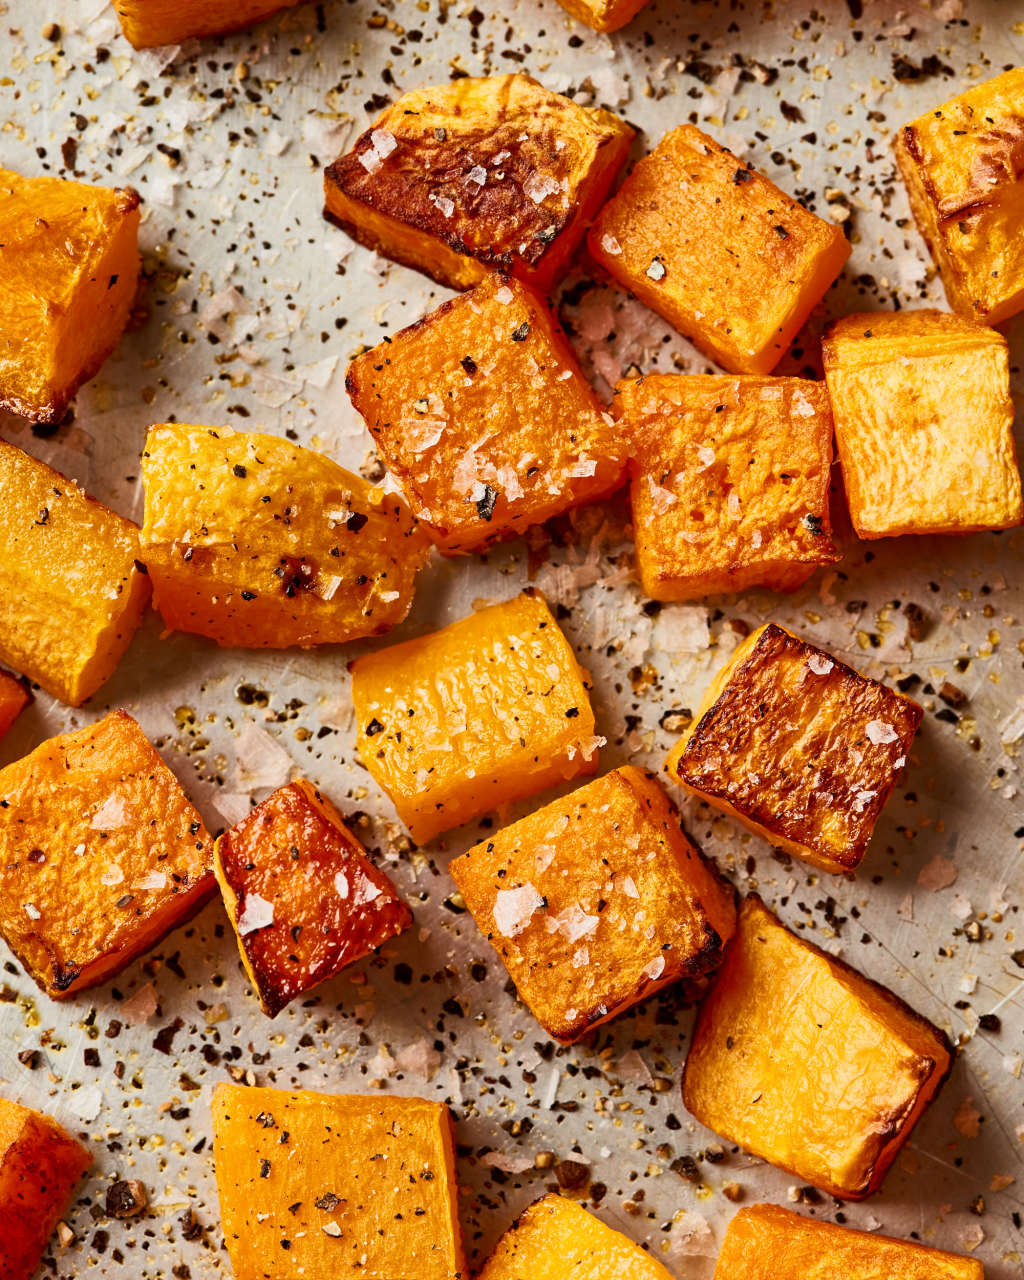 The Foolproof Technique for Roasting Butternut Squash